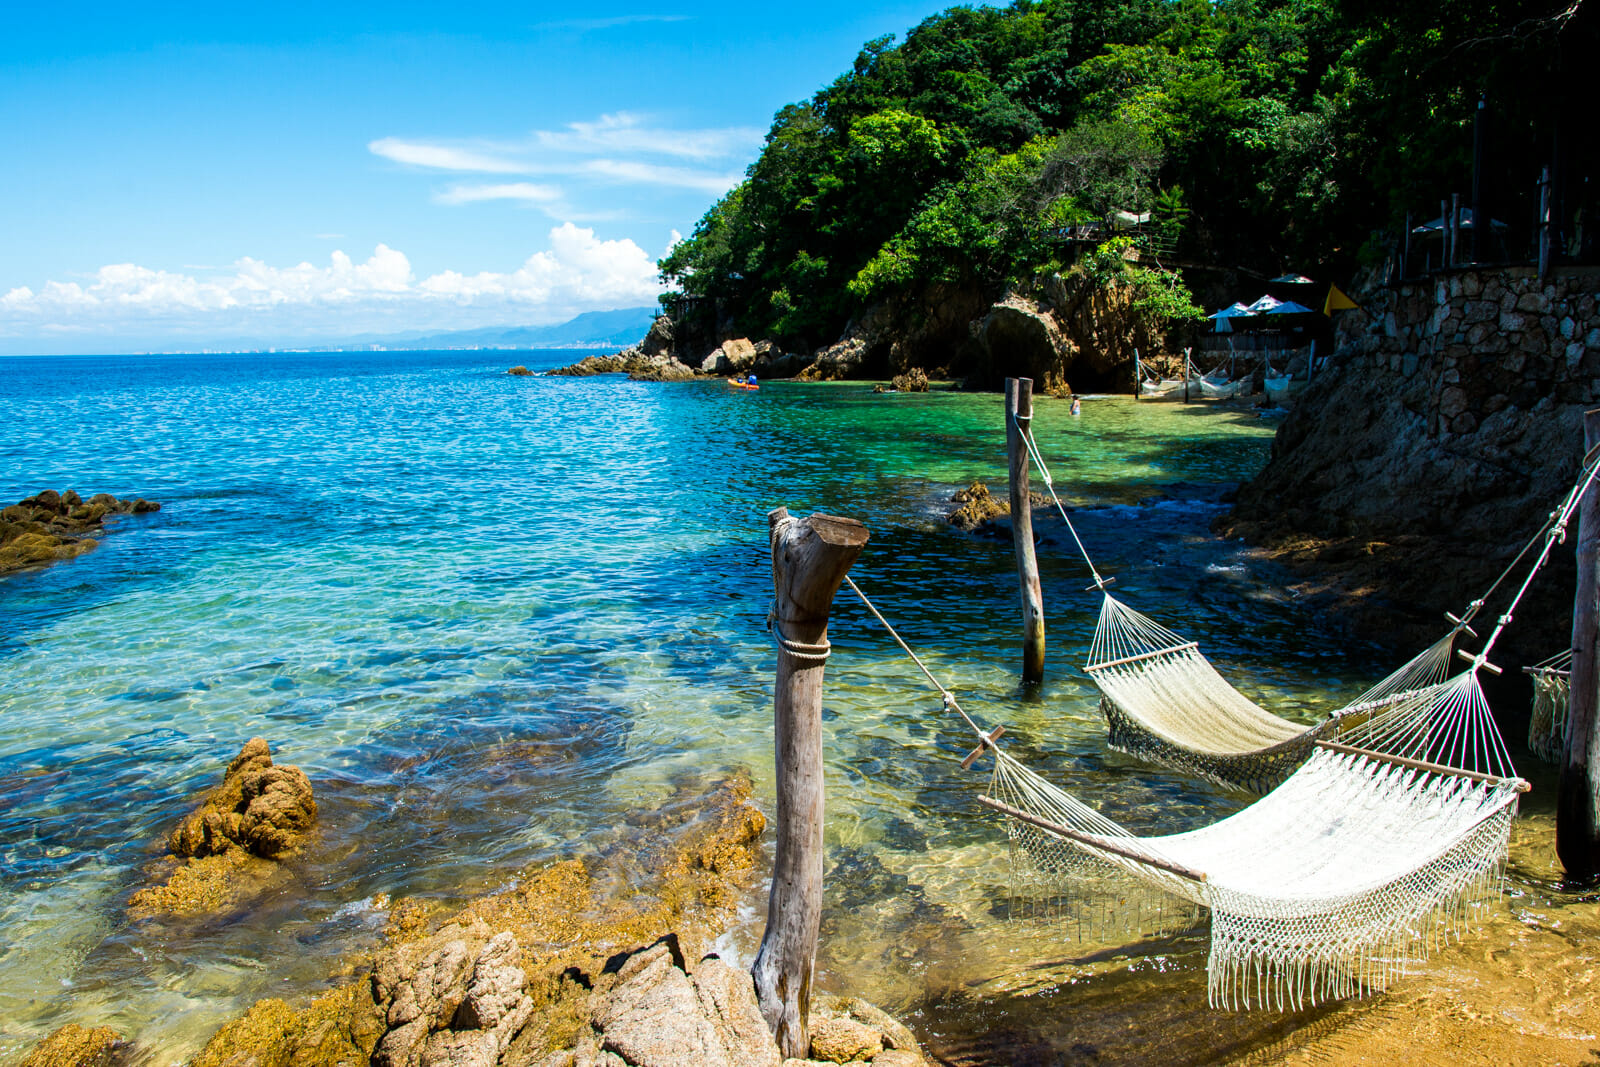 Hammock with a cocktail? Yes please!